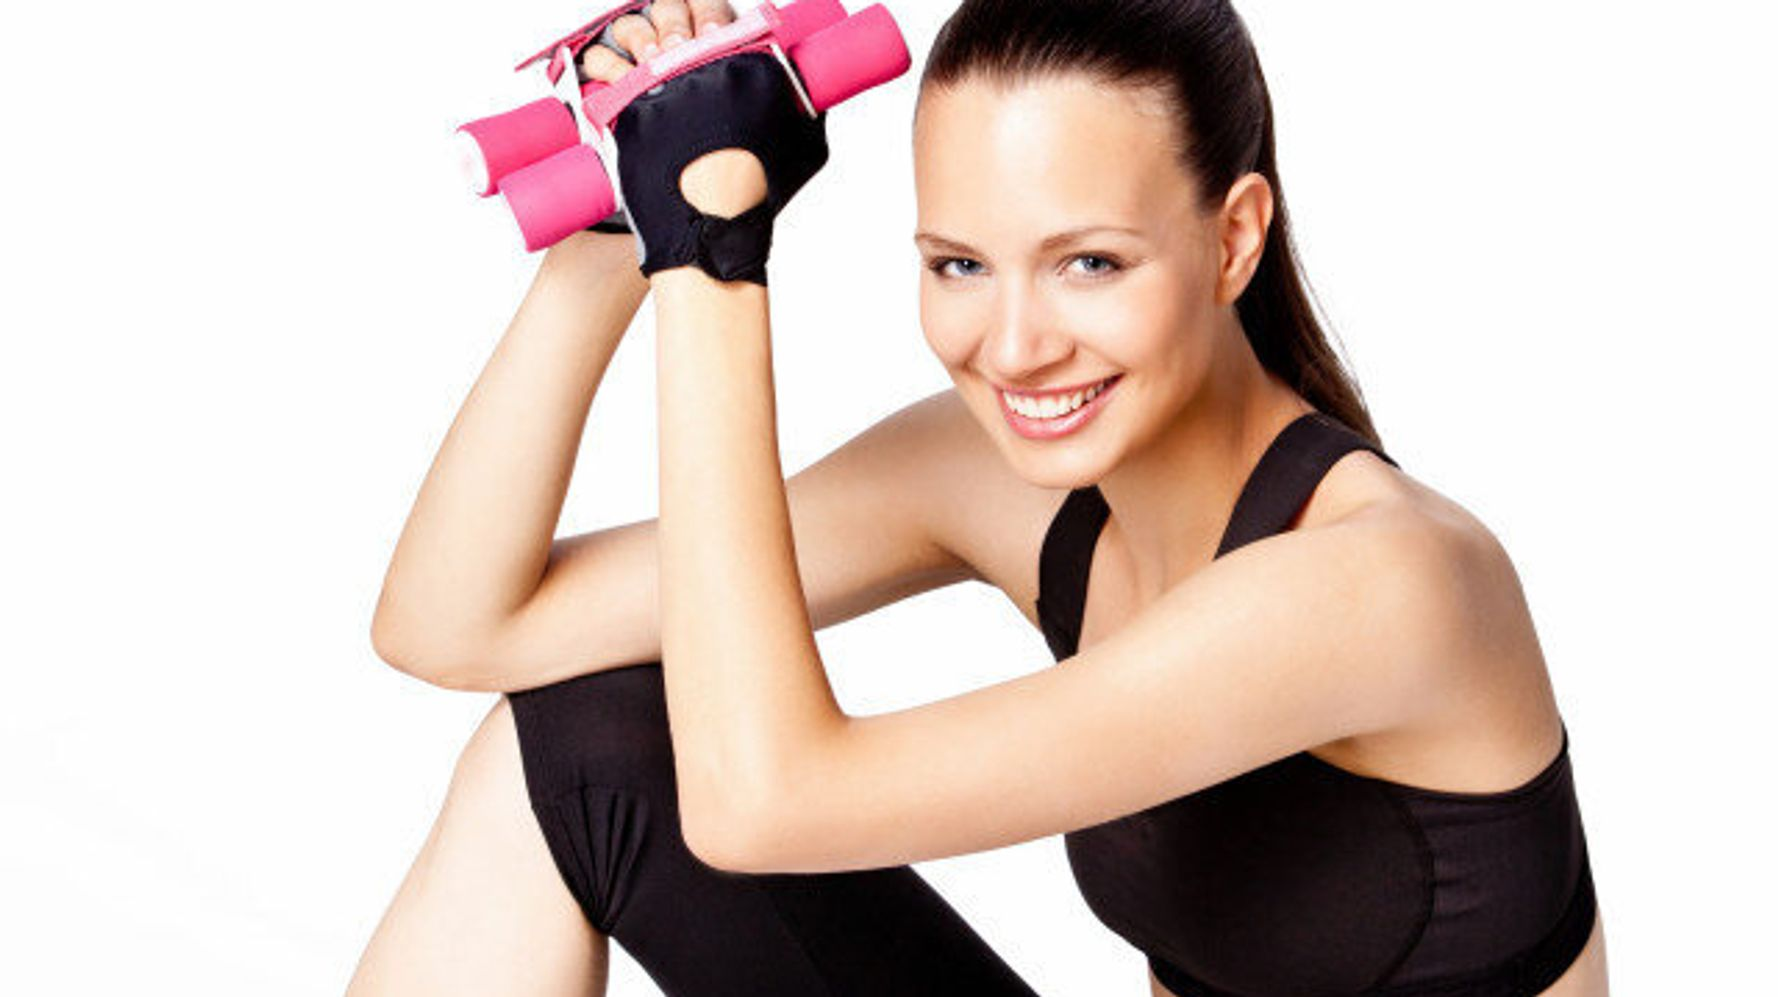 5 Exercises to Help Tighten Loose Arm Skin for Women Over 40